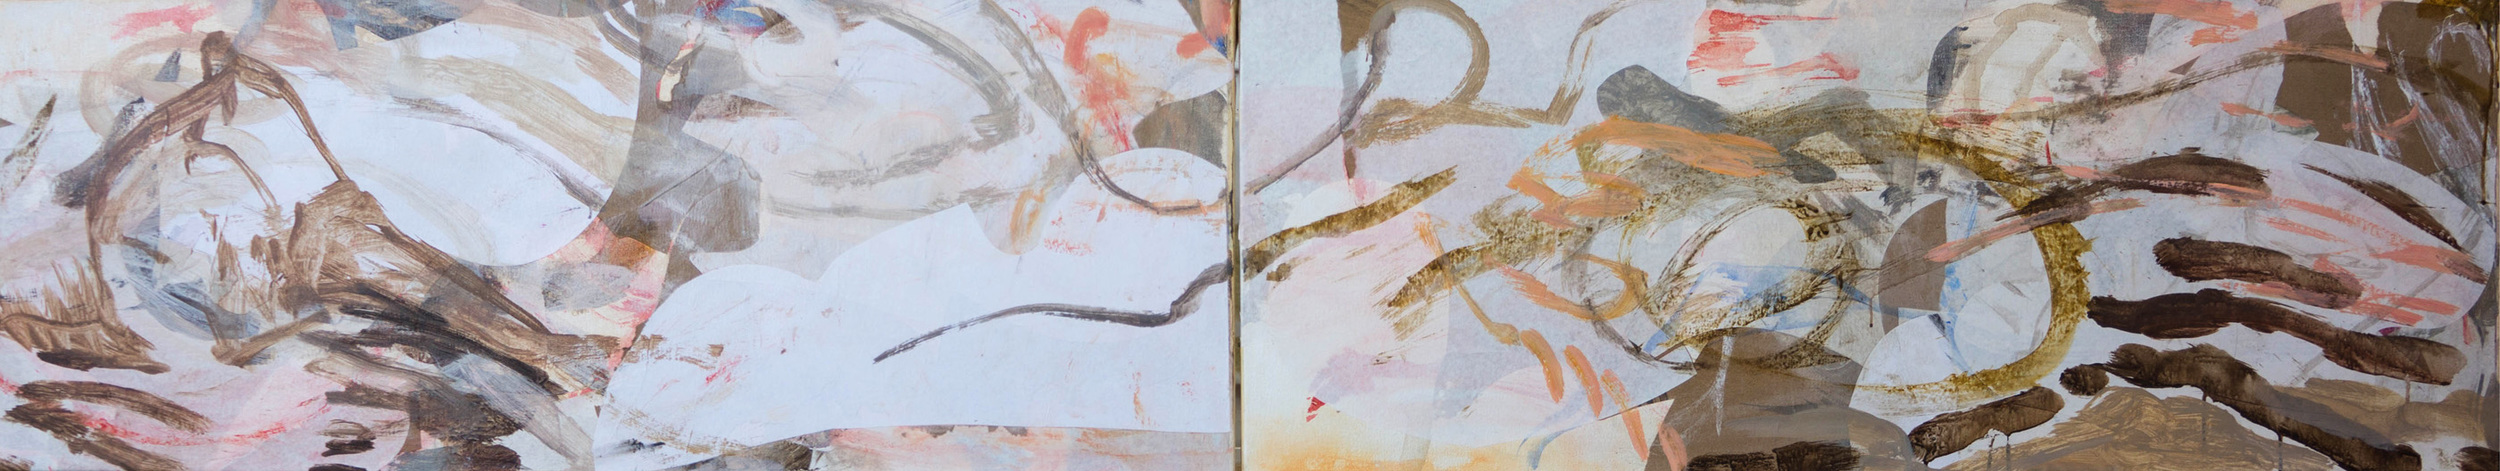 """10/23/13:  cheng creek  18x96"""" acrylic & collaged paper on linen"""